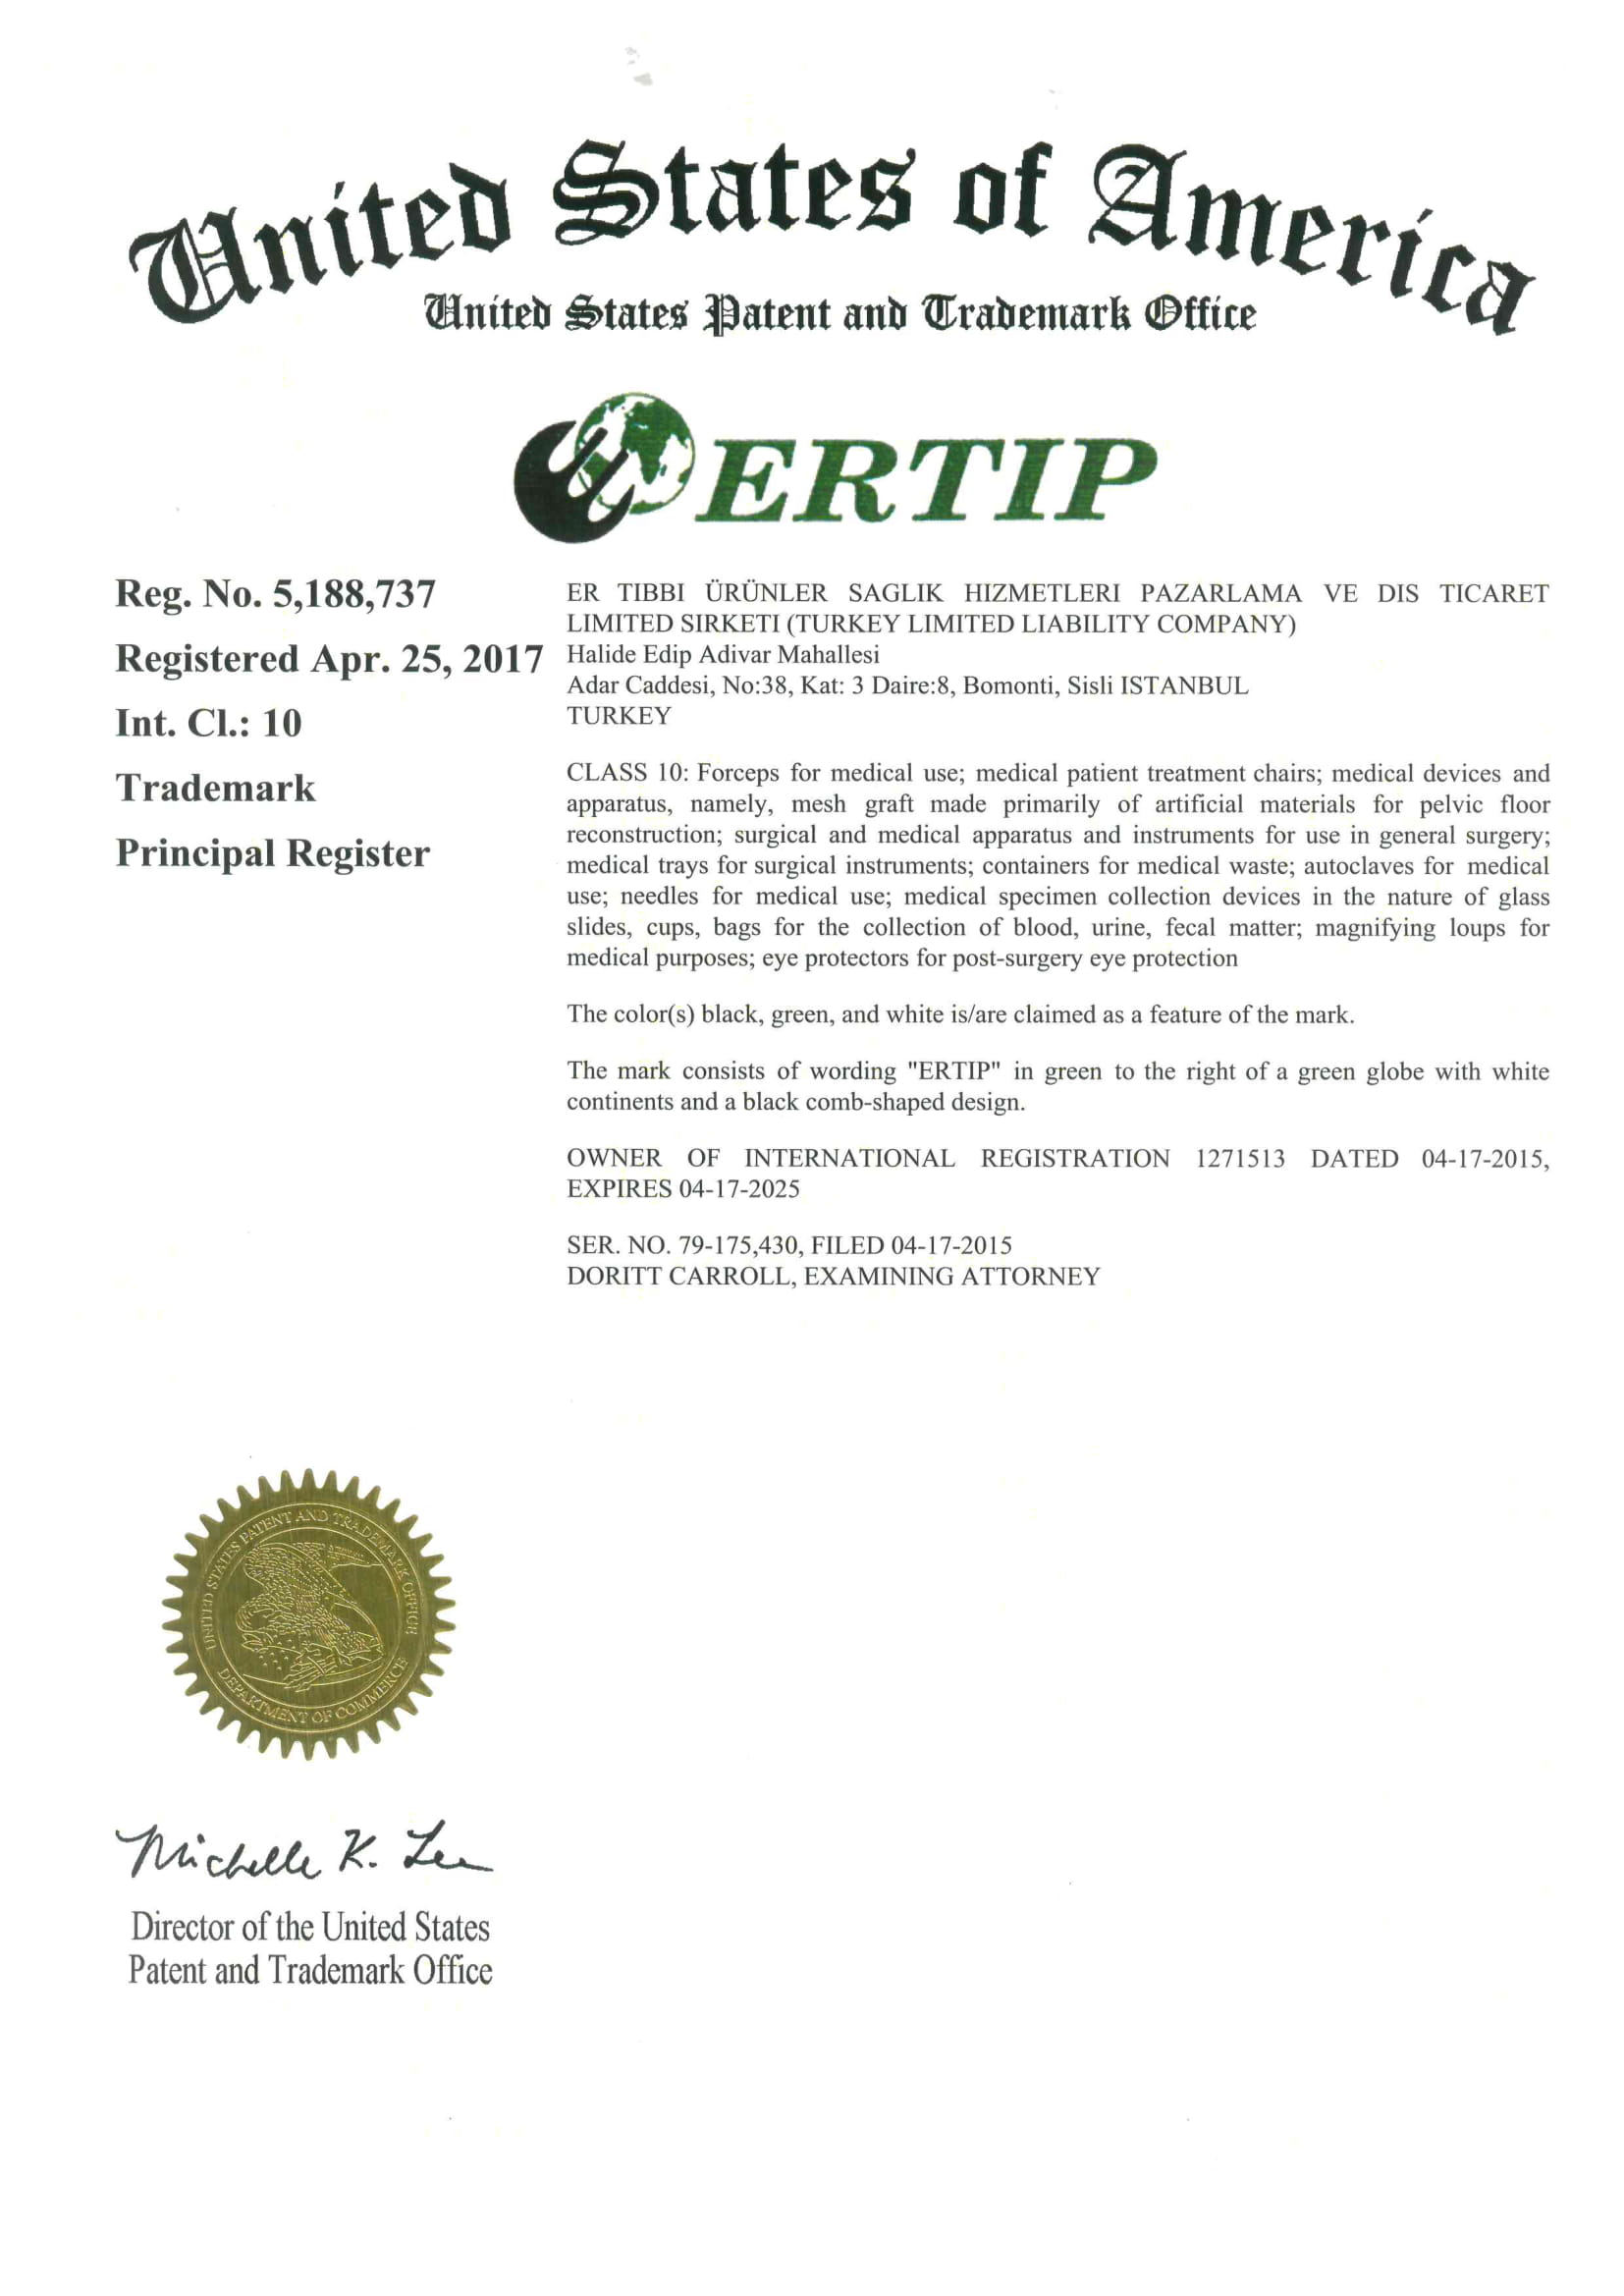 USA Trademark Registration Certificate